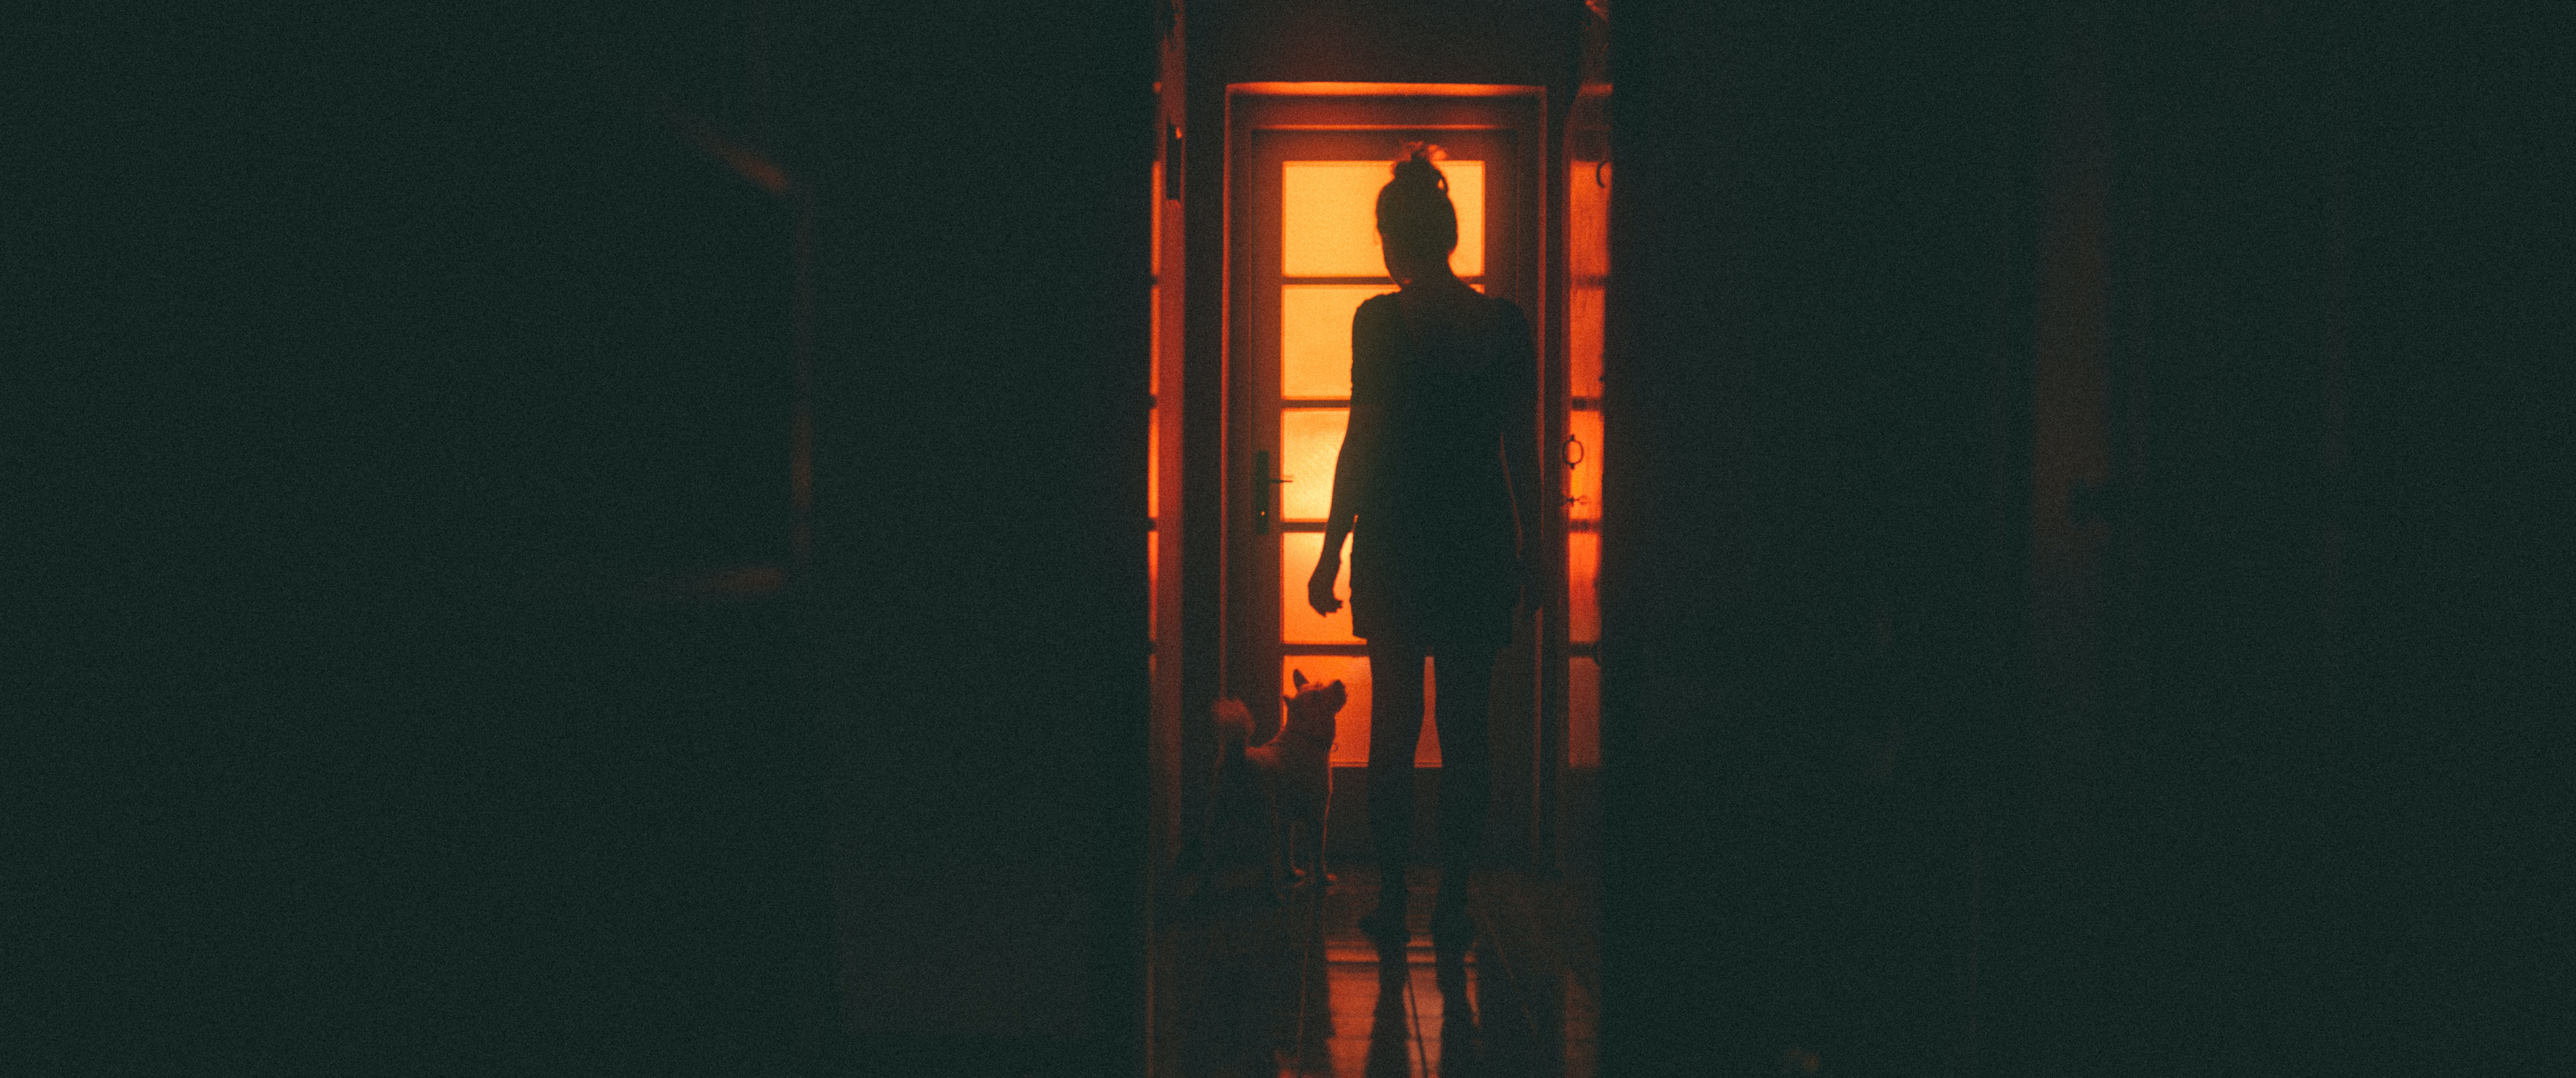 Silhouette of the back of a woman and dog looking outside a door.